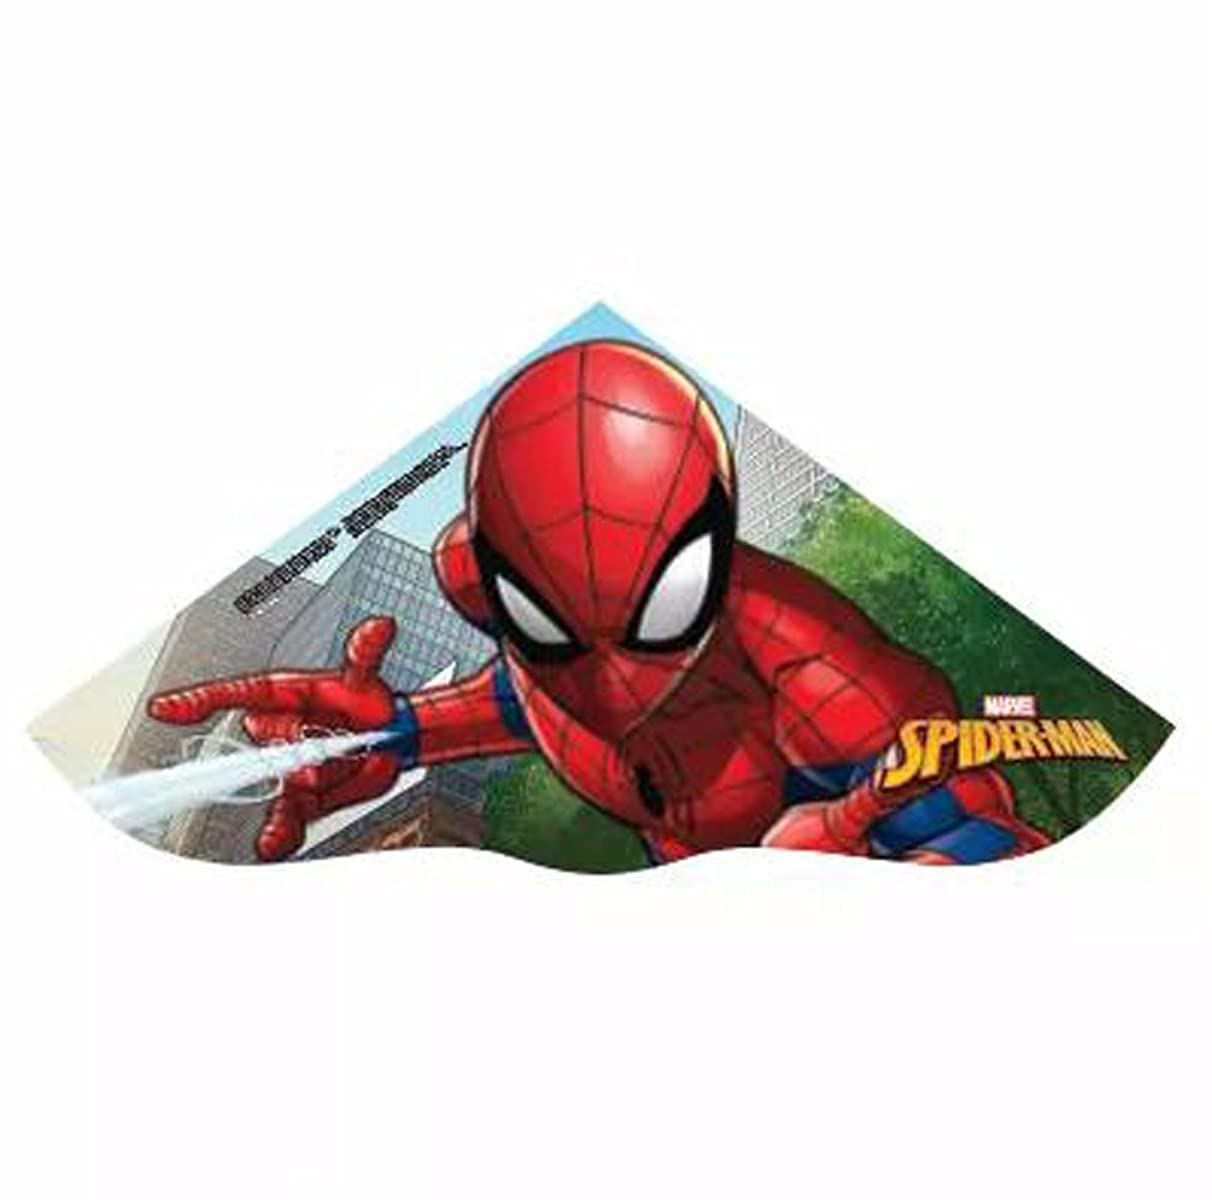 X-Kites Skydelta 42-inches Poly Delta Kite: Marvel Ultimate Spiderman (2018)